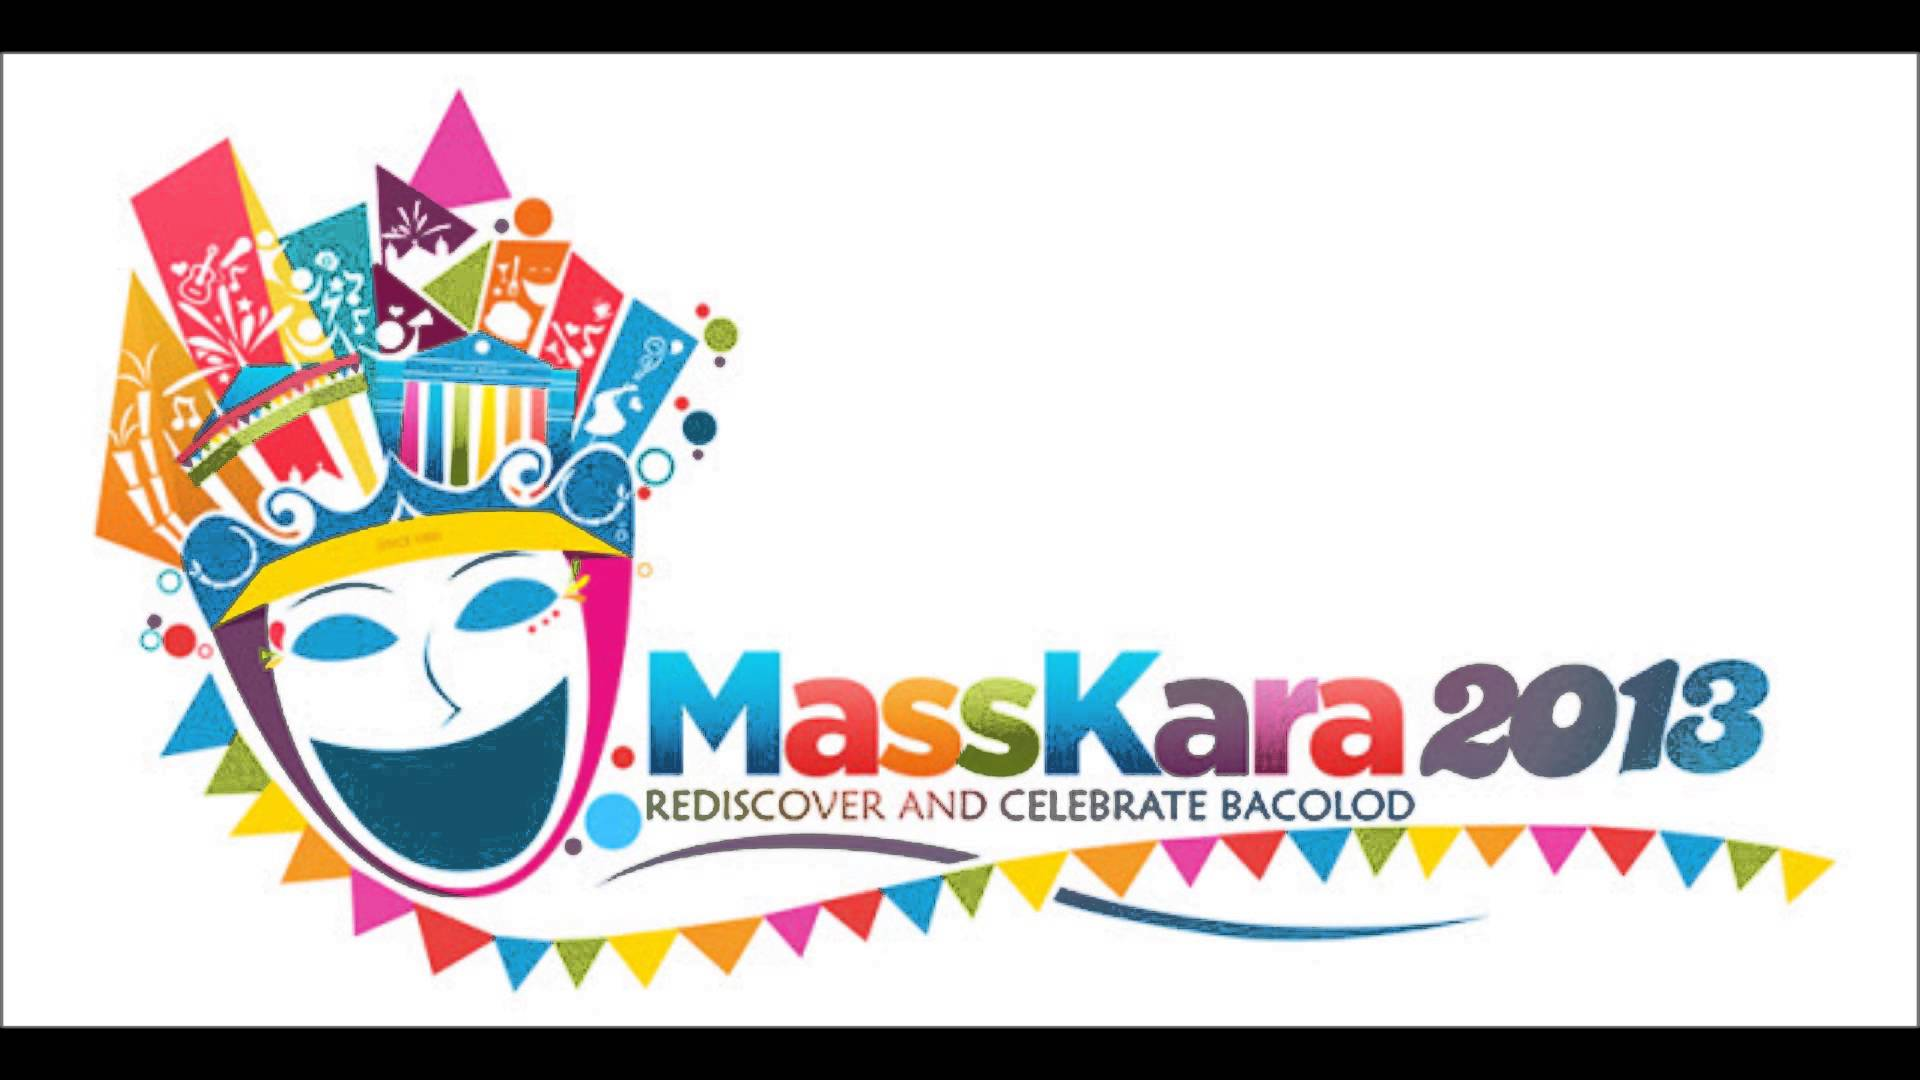 Festival clipart maskara 2013 YouTube Festival and Bacolod!